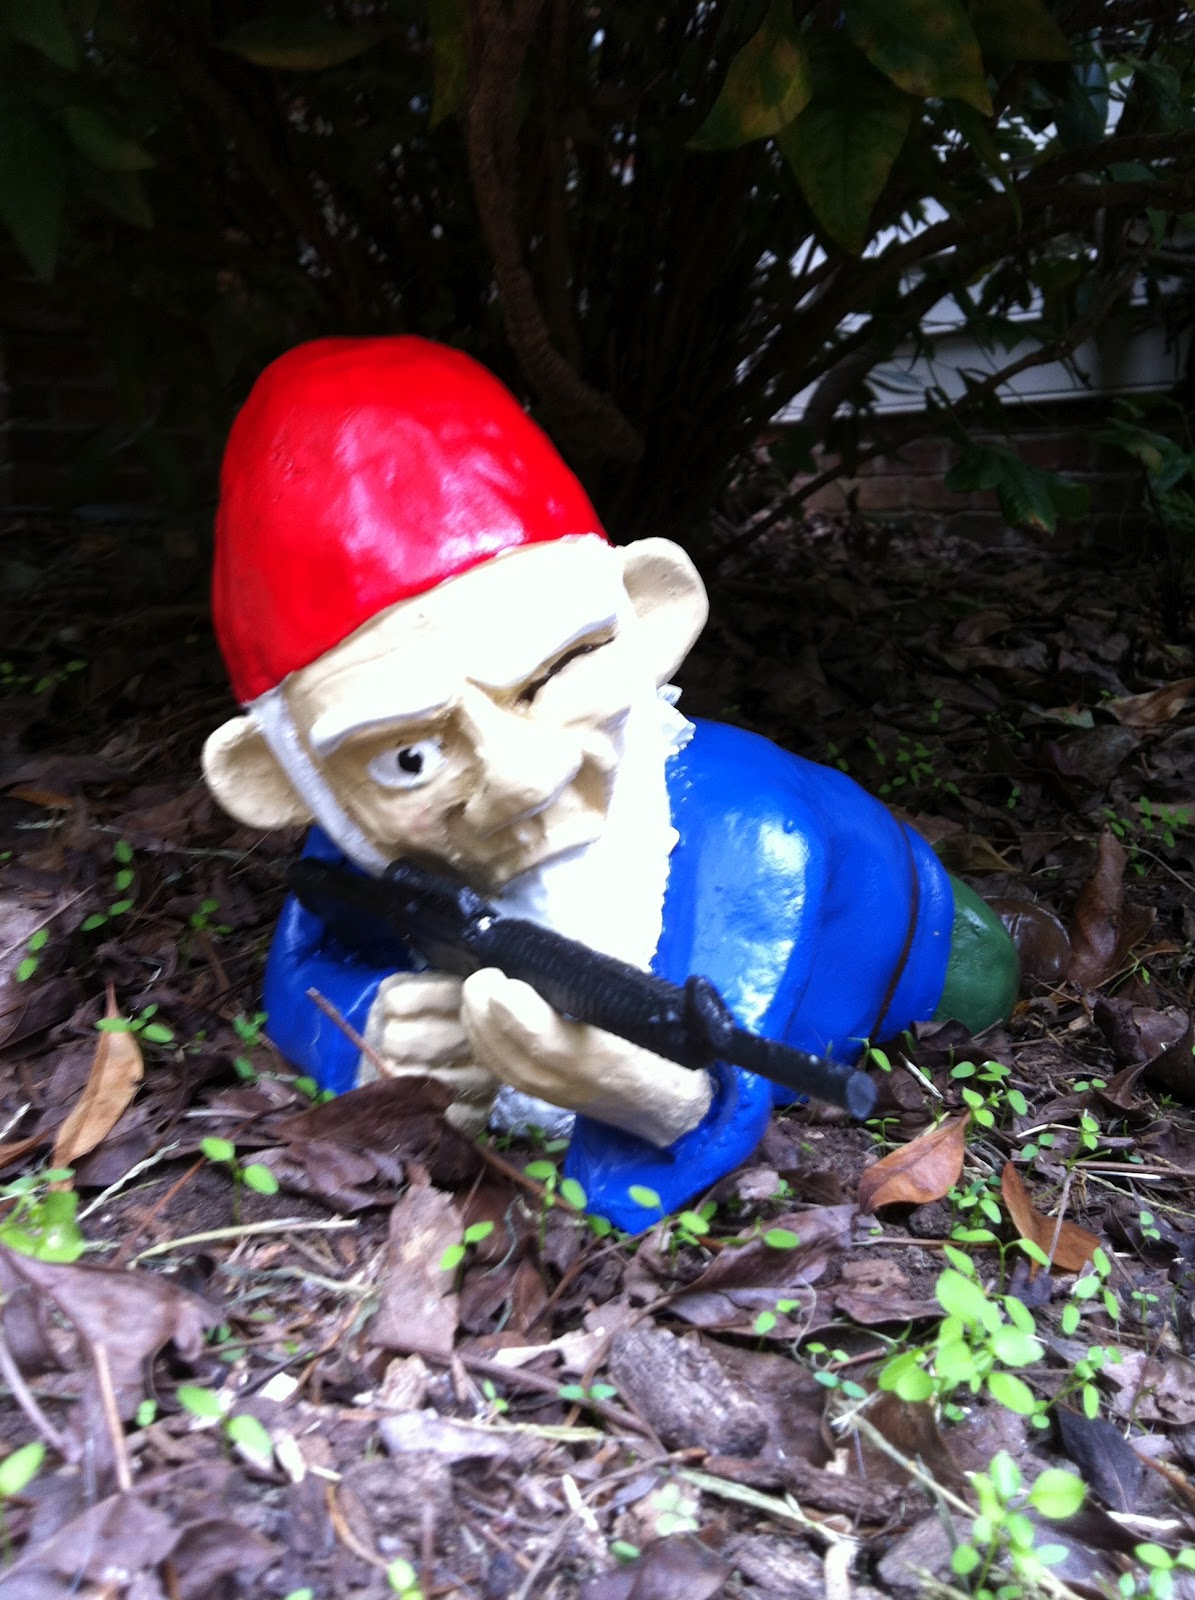 Musings Over a Pint: The Gnomes Are On Patrol